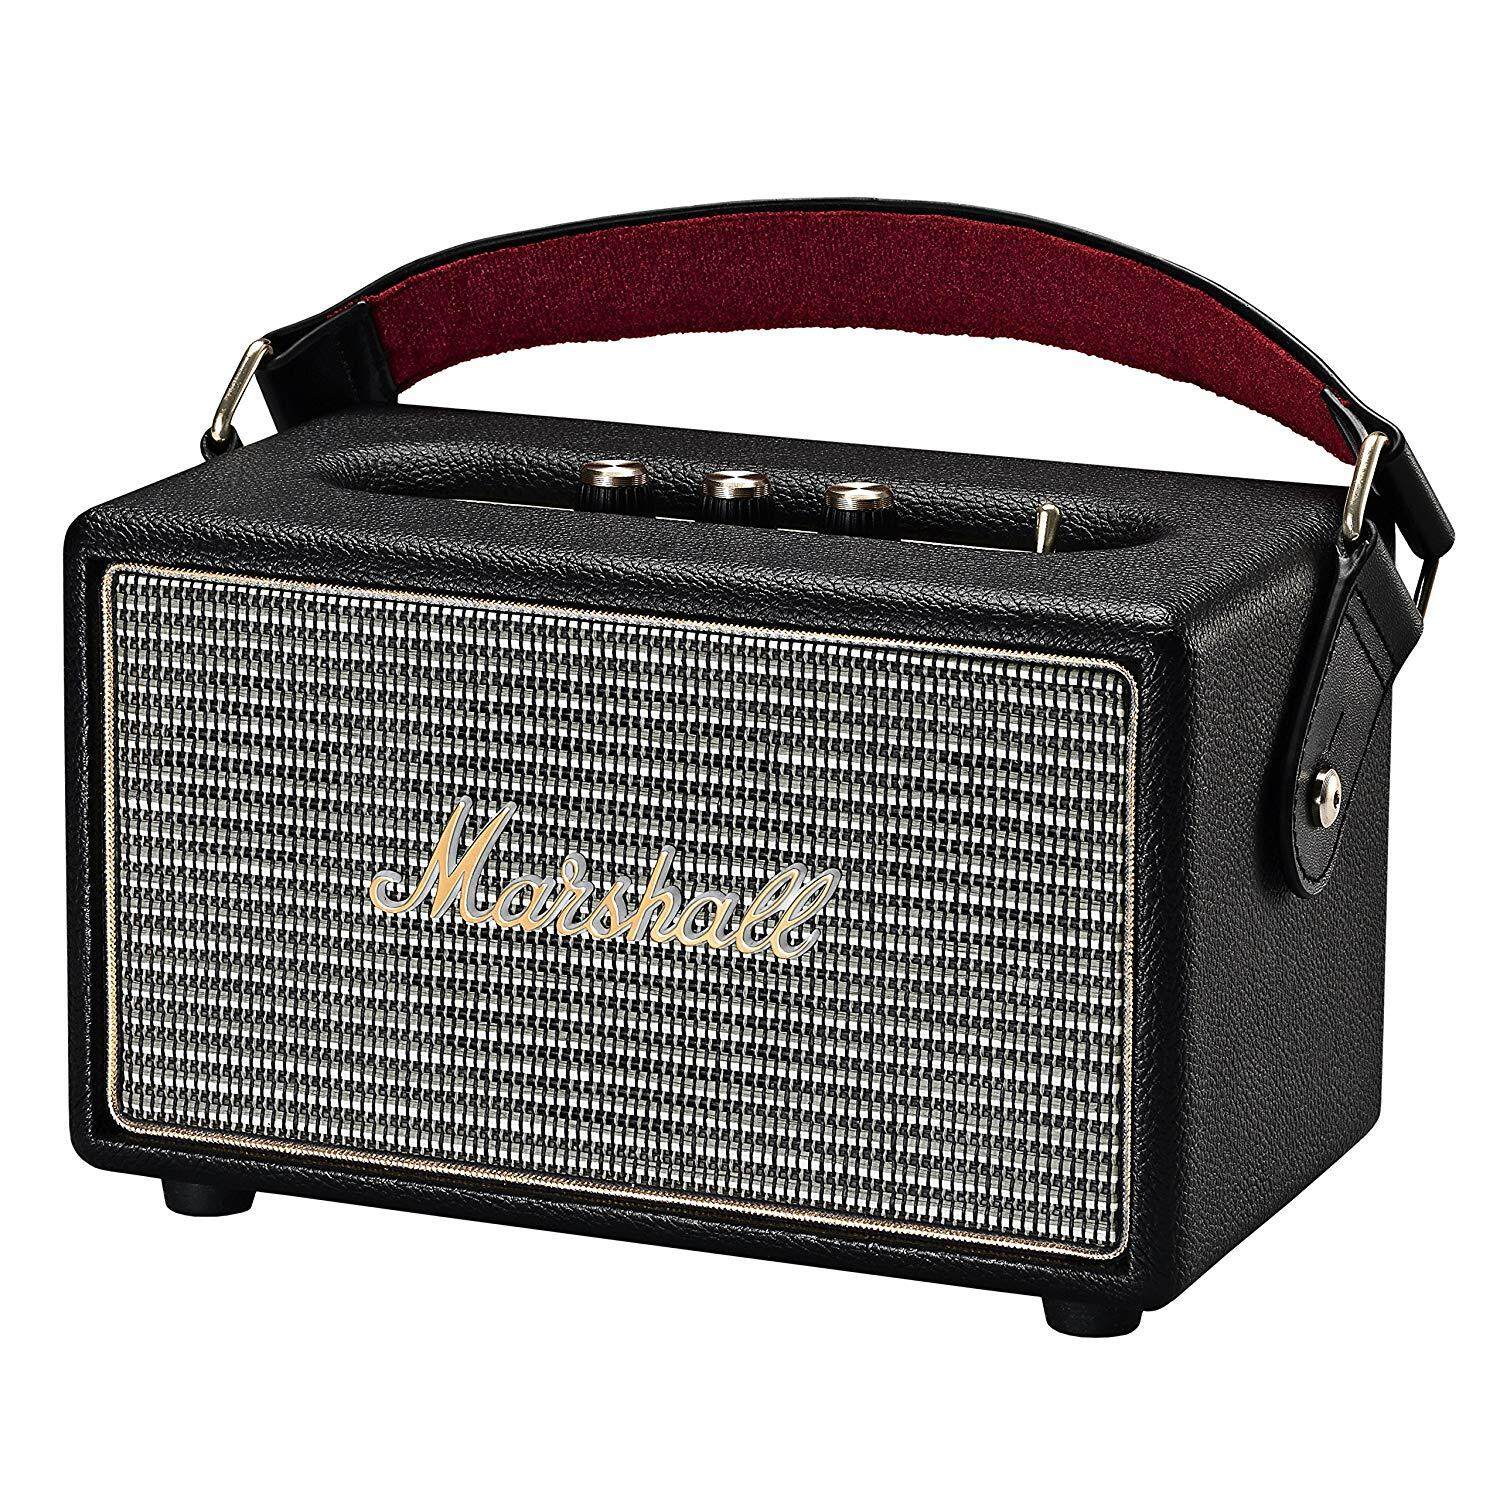 สอนใช้งาน  ชุมพร Marshall Audio Kilburn Portable Bluetooth Speaker - [Black]